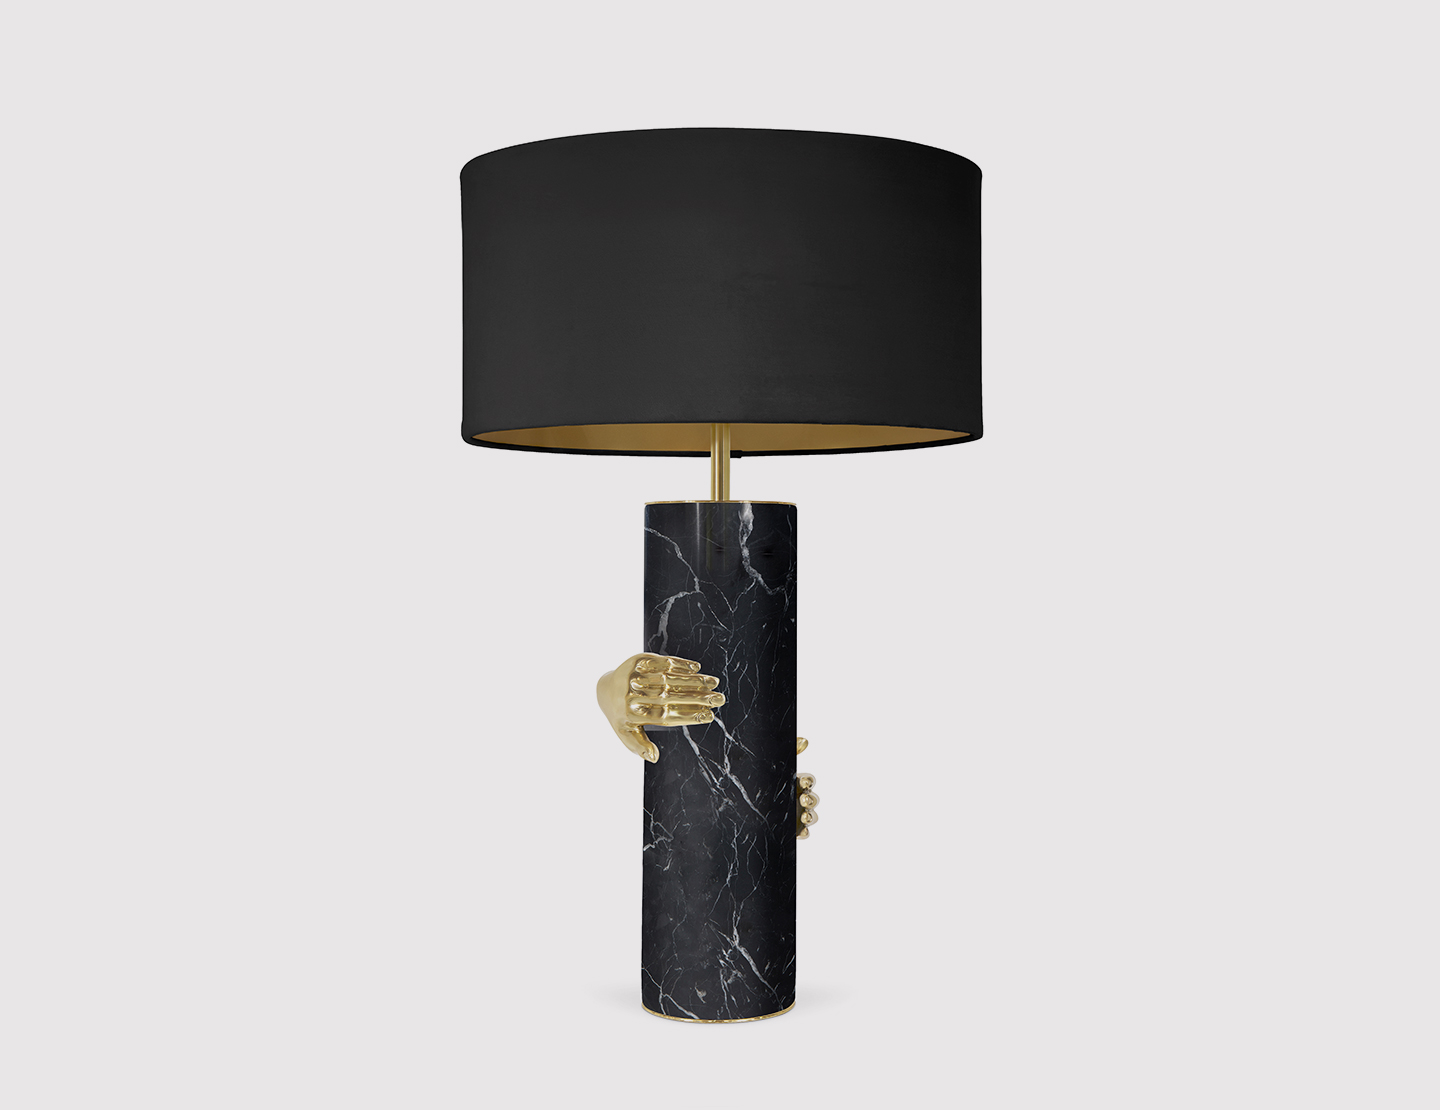 VENGEANCE Table Lamp By KOKET. Rollover The Image To